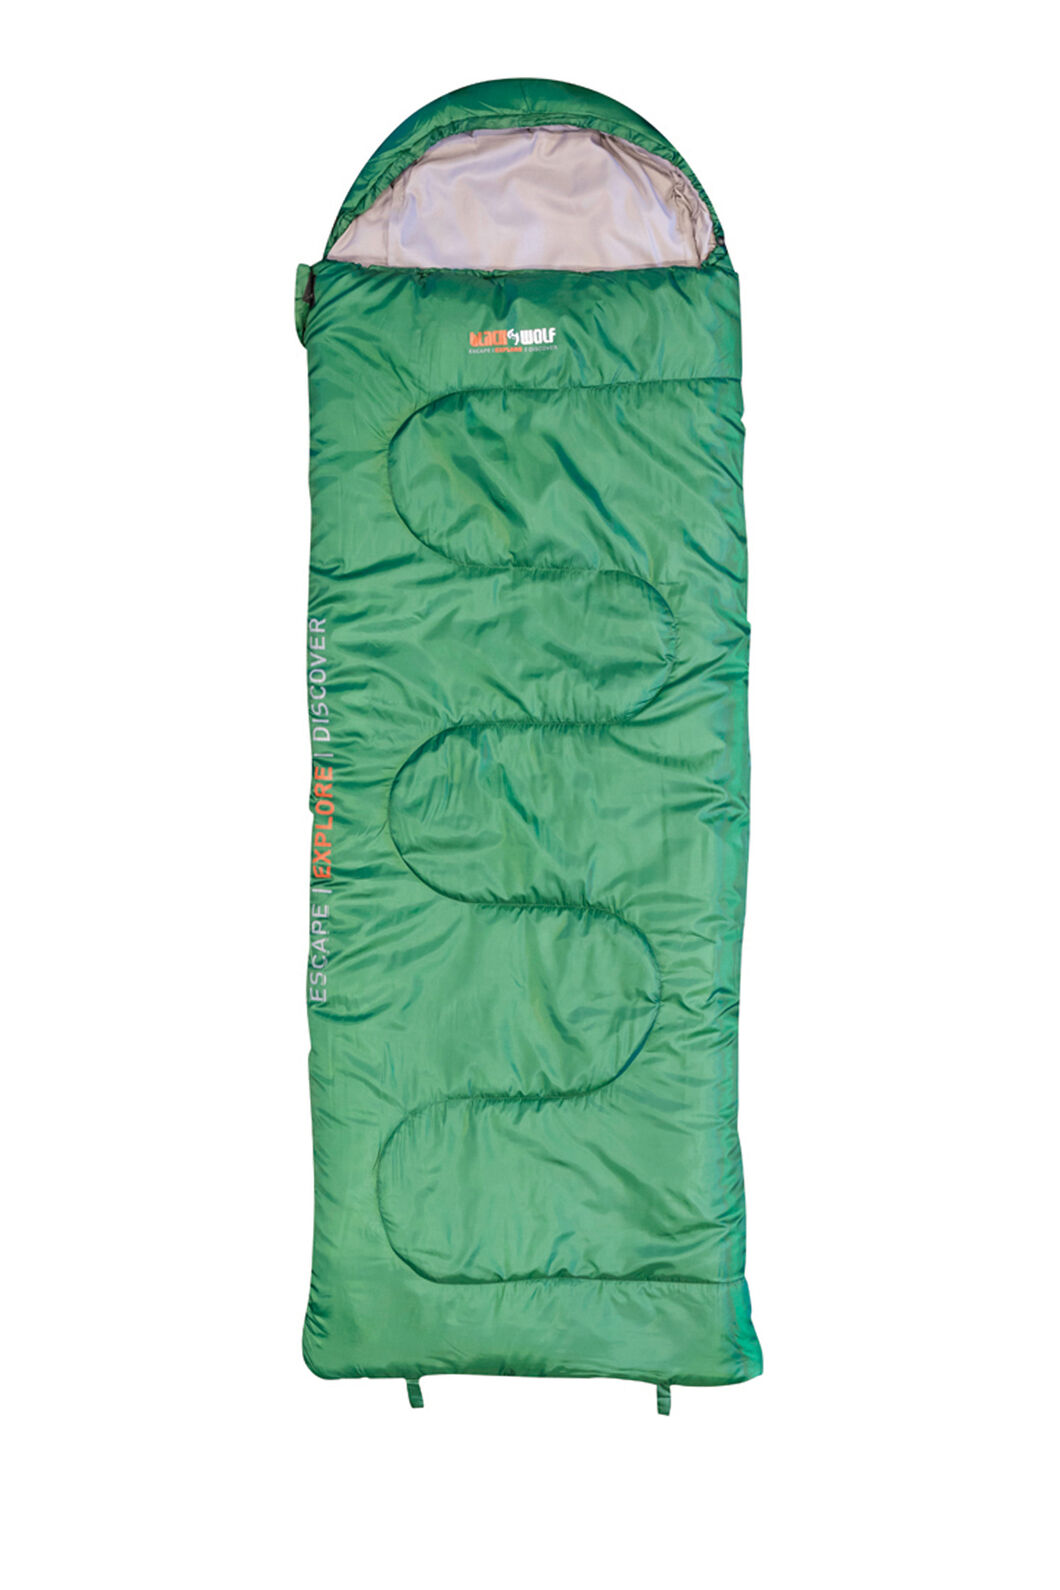 BlackWolf Meridian 300 Sleeping Bag 6, None, hi-res